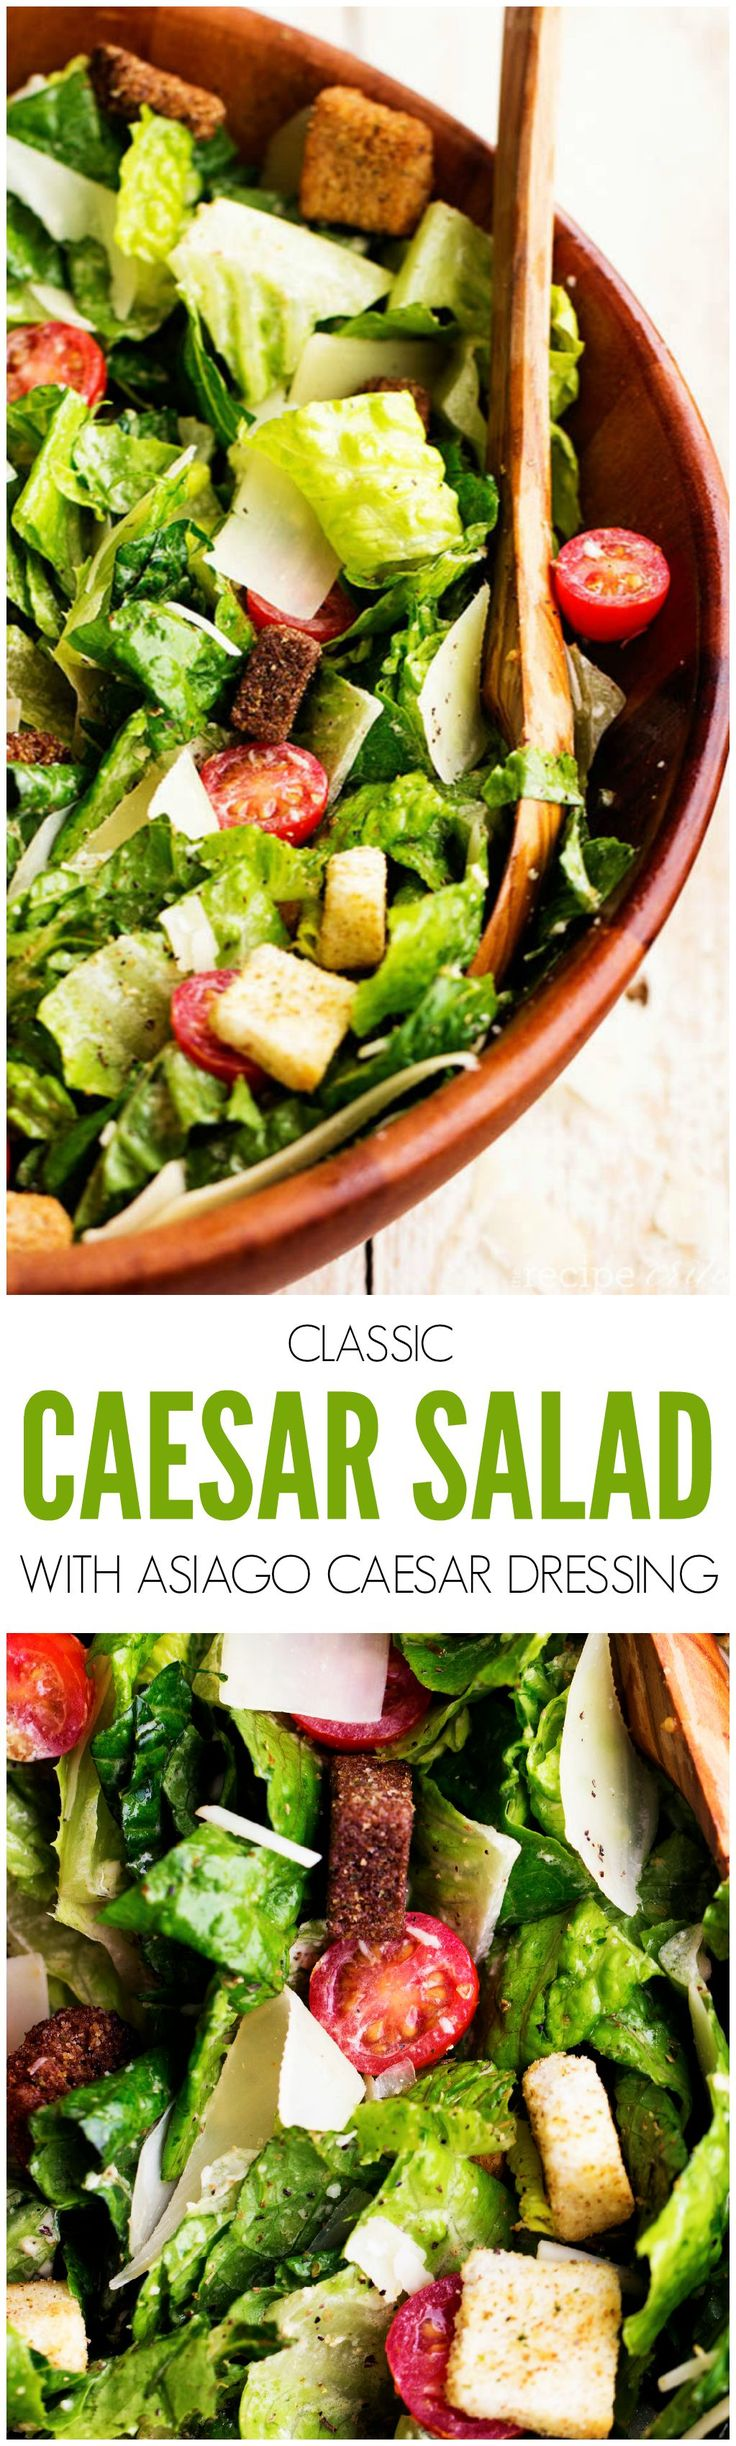 This is the BEST caesar salad that you will make! And the asiago caesar dressing is the perfect finishing touch!!